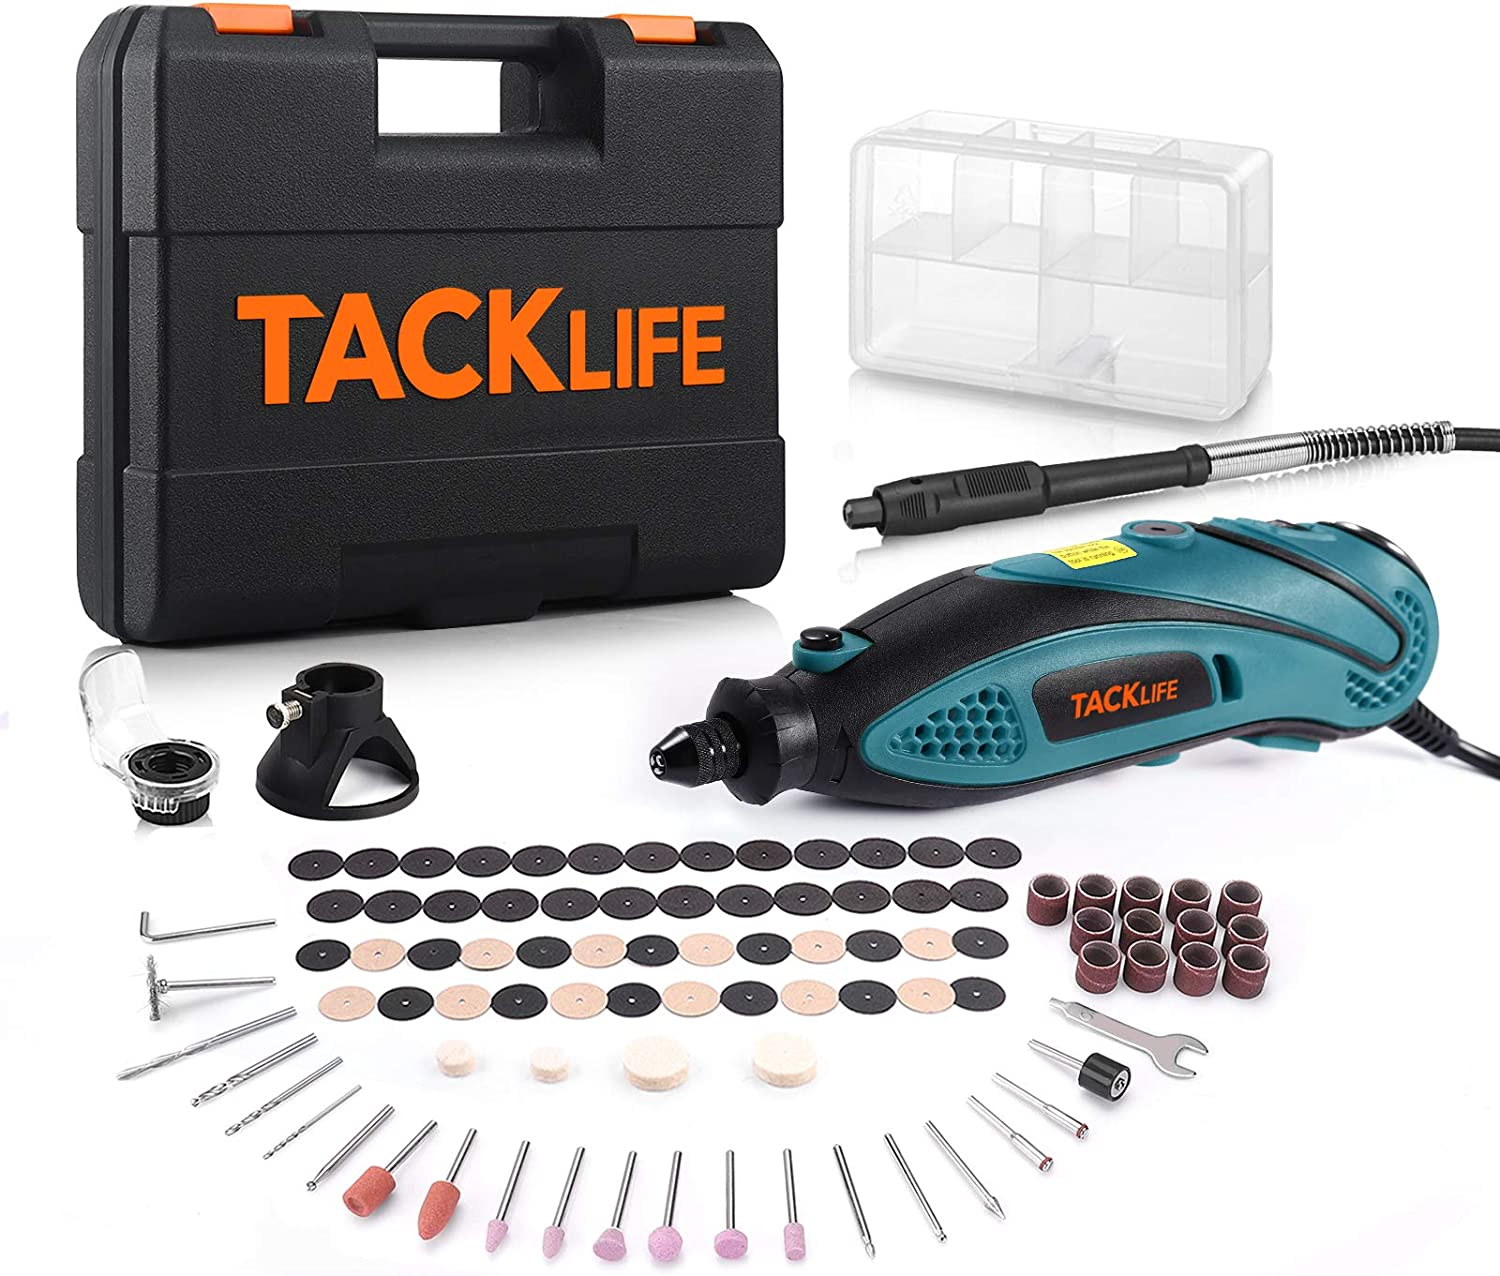 TACKLIFE  Multi-functional  RTD35ACL Rotary Tool Kit $31.97